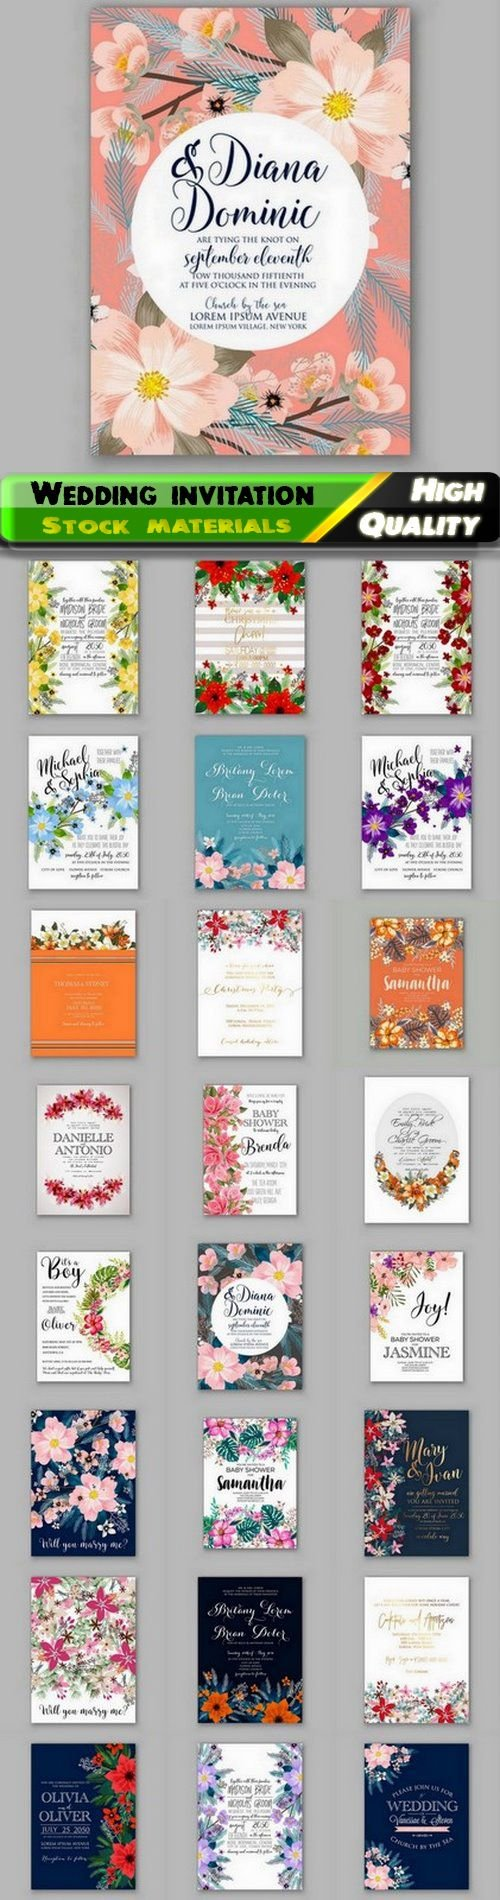 Cute wedding invitation and baby shower floral card - 25 Eps